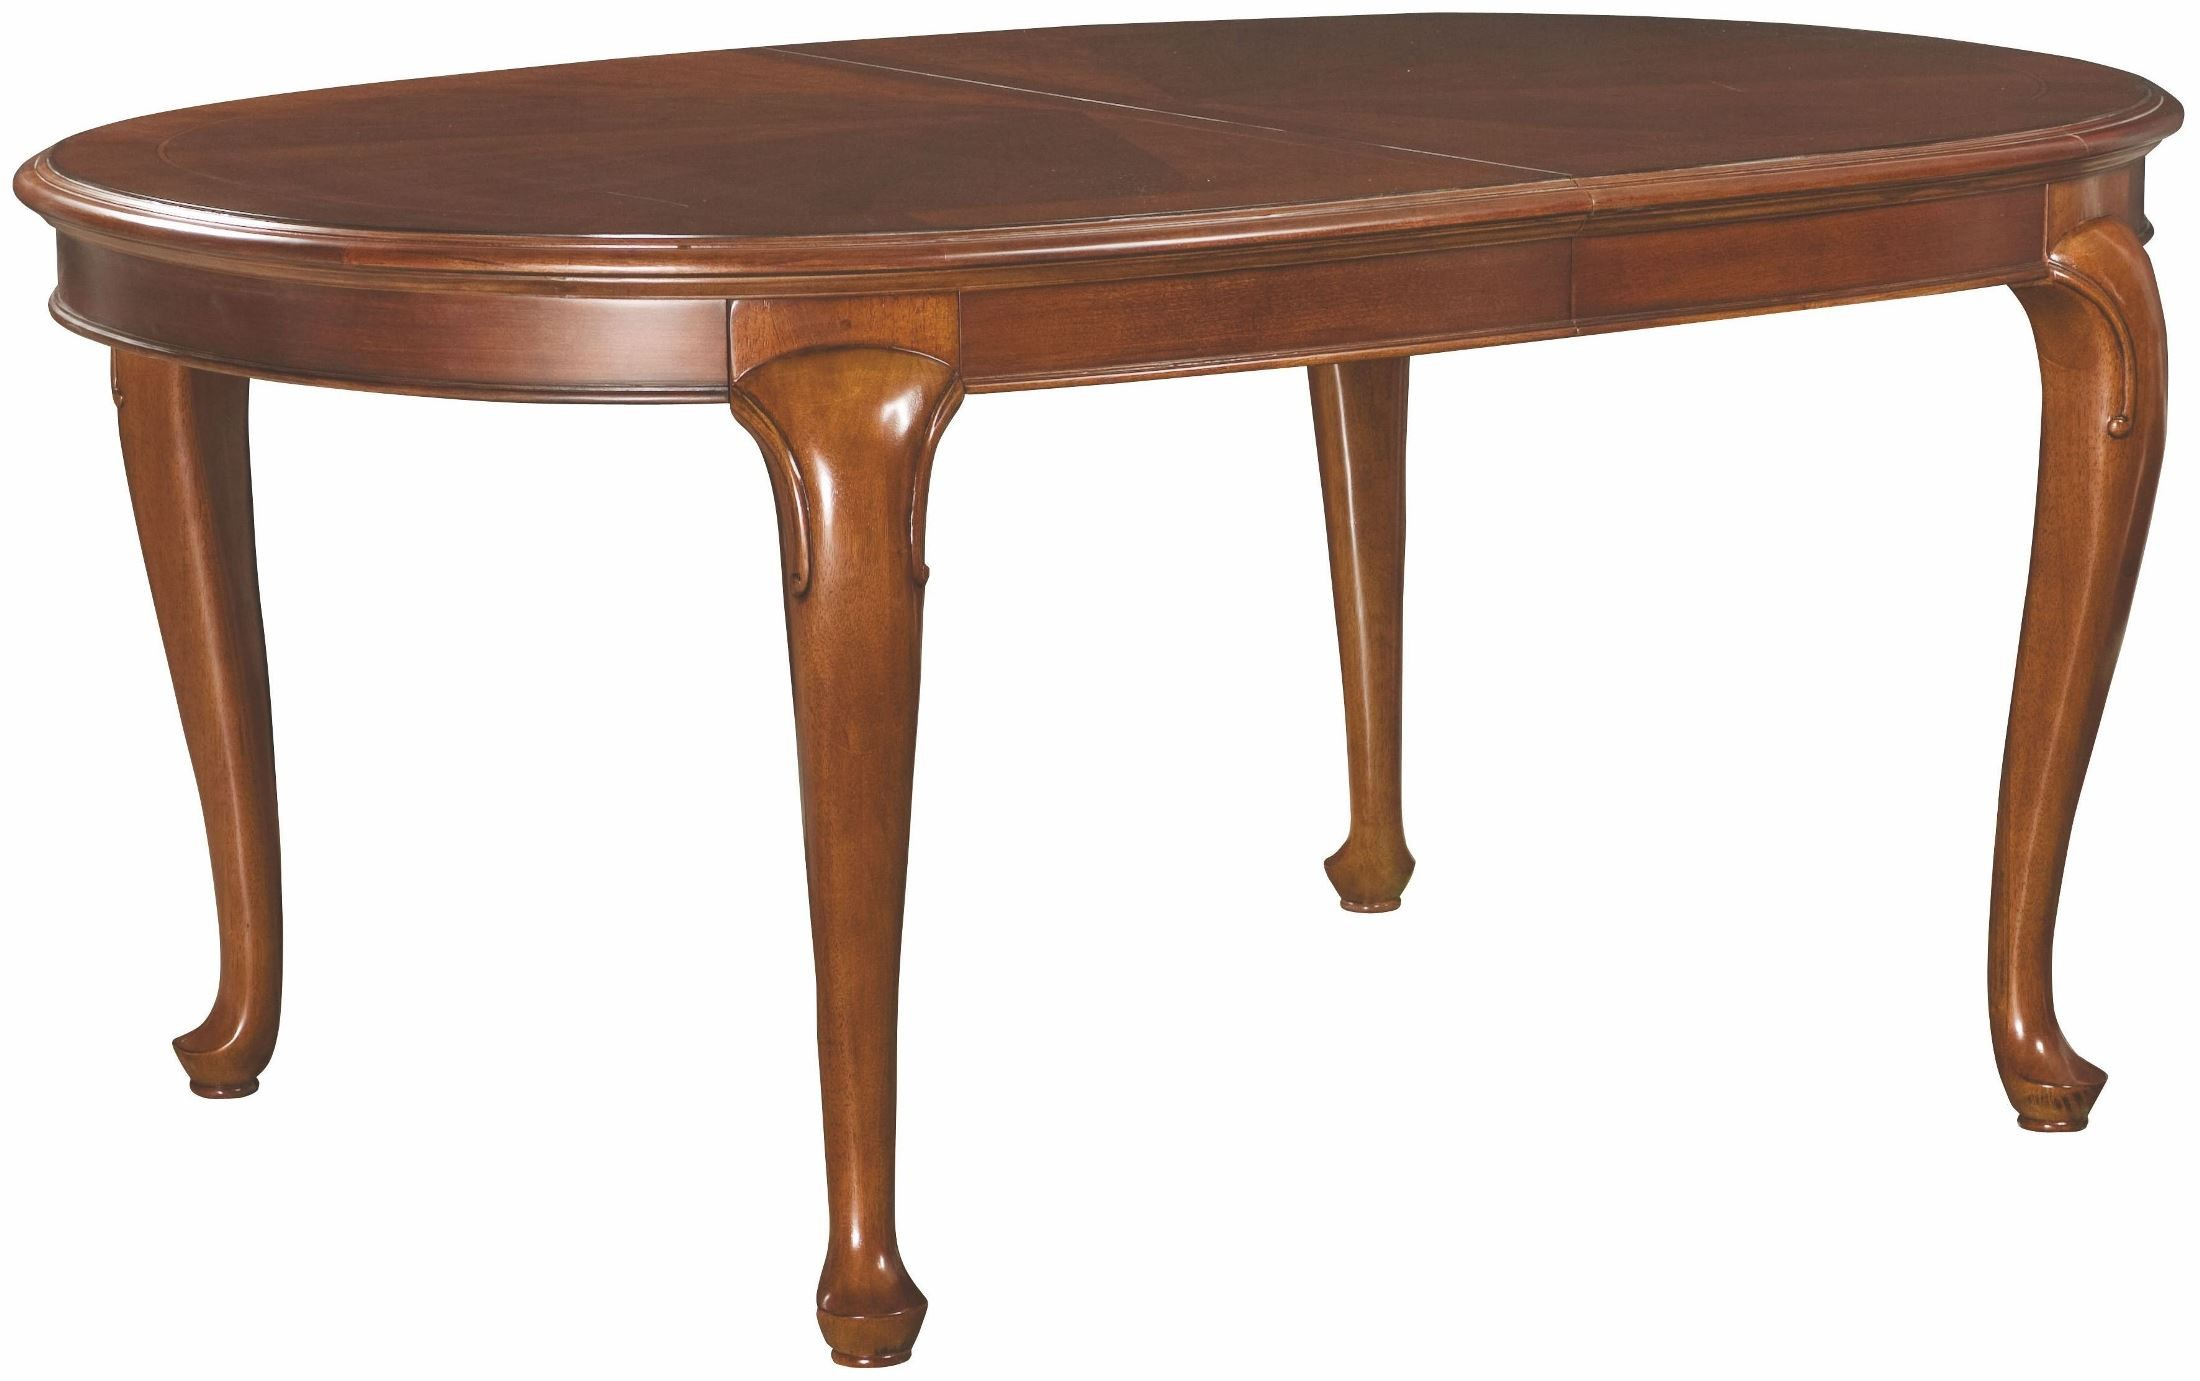 Cherry Grove Classic Antique Extendable Cherry Oval Leg  : 792 760silo from colemanfurniture.com size 2200 x 1381 jpeg 228kB